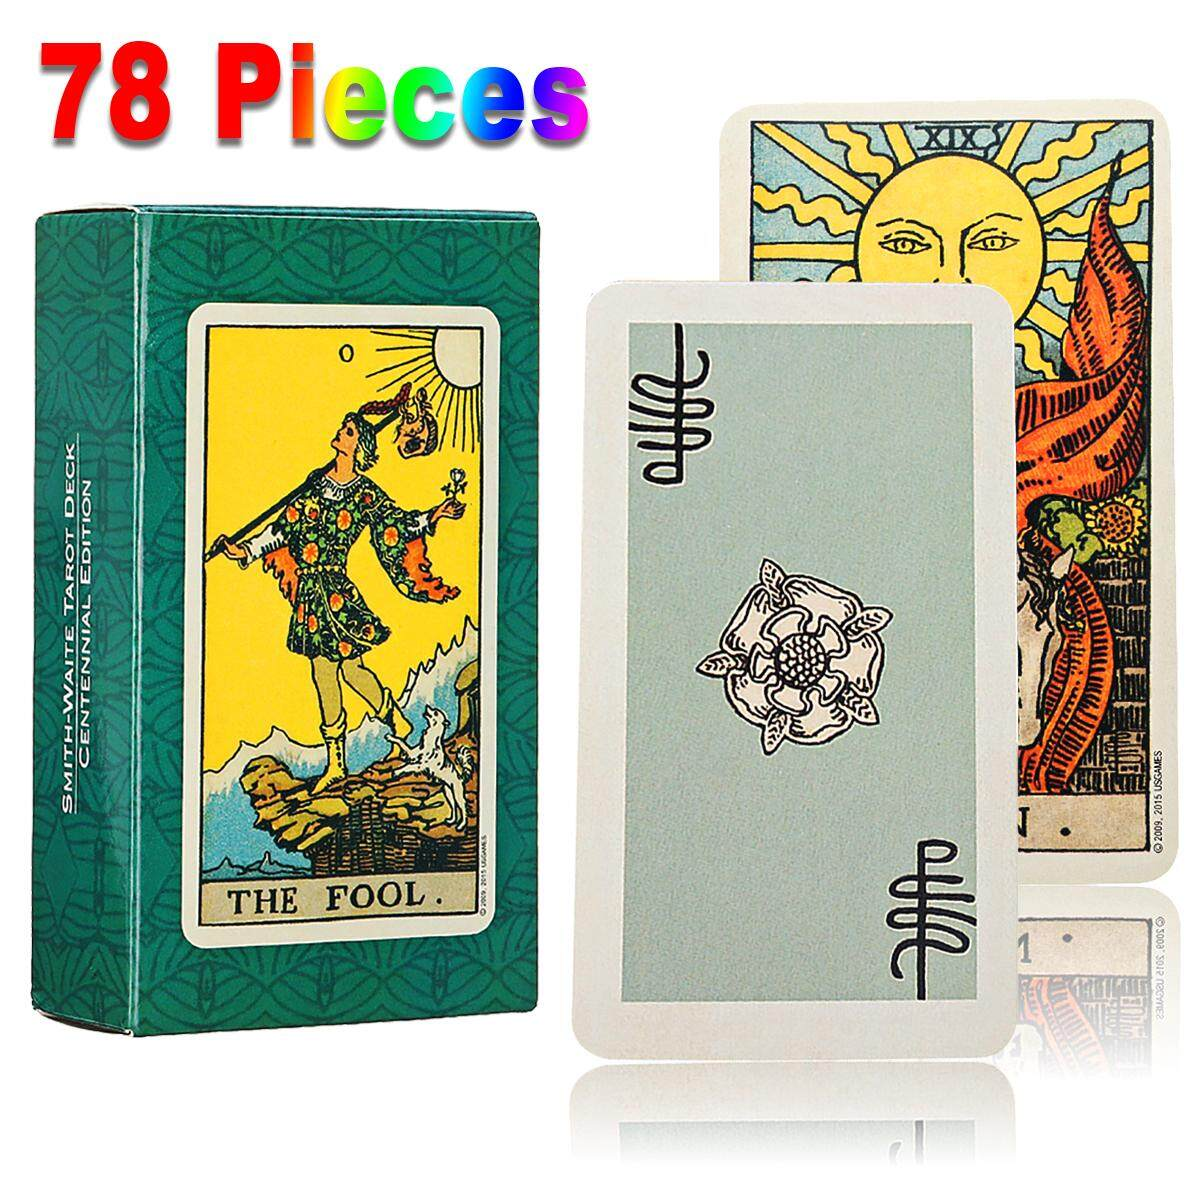 1 Set Of 78pcs Tarot Deck Cards Smith Waite Tarot English Full Version Card Game By Laker.